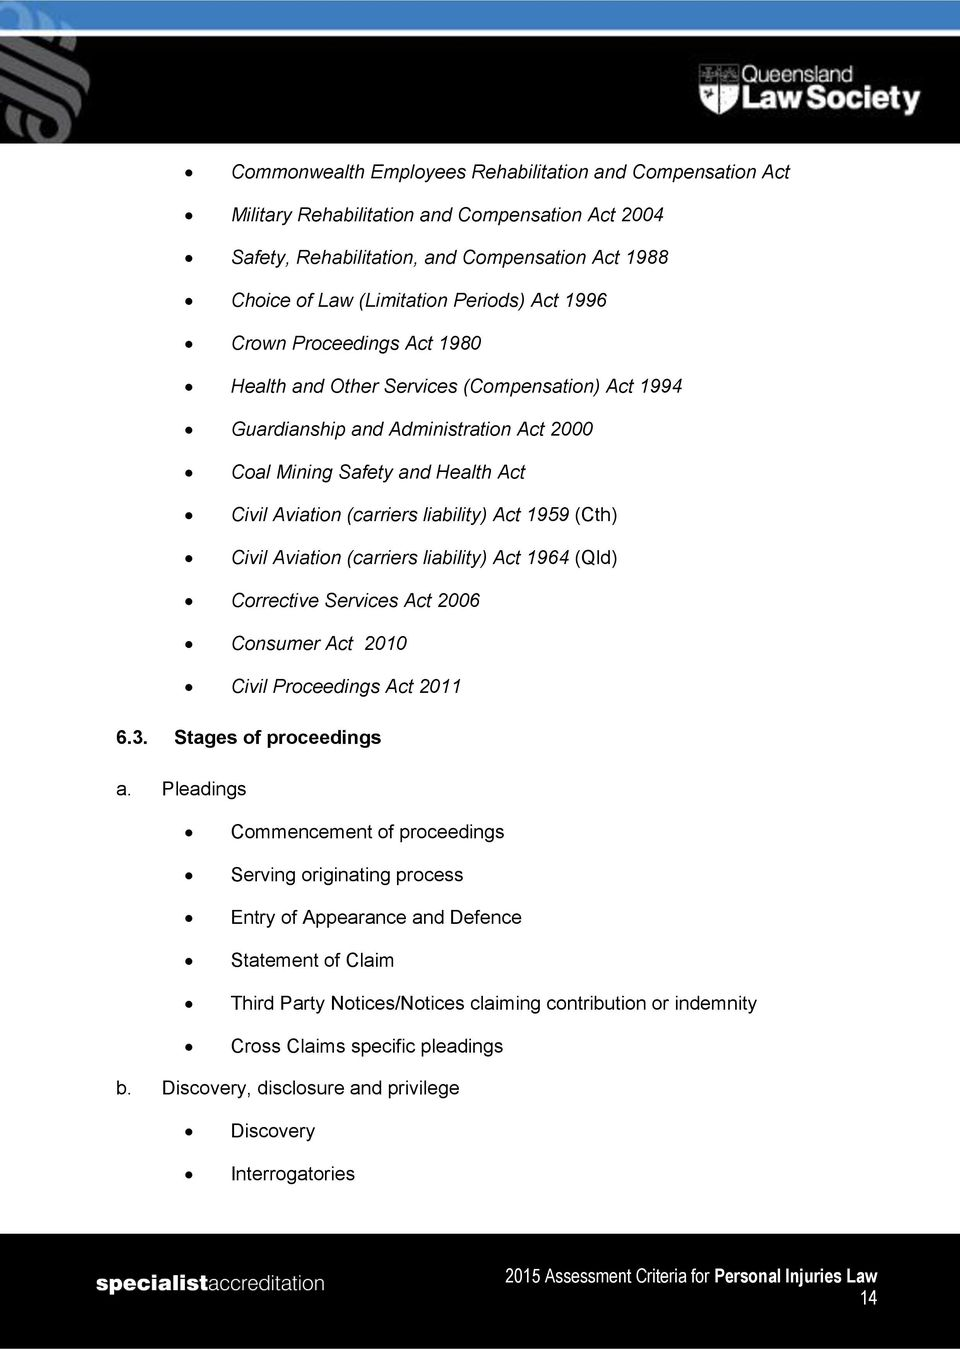 1959 (Cth) Civil Aviation (carriers liability) Act 1964 (Qld) Corrective Services Act 2006 Consumer Act 2010 Civil Proceedings Act 2011 6.3. Stages of proceedings a.